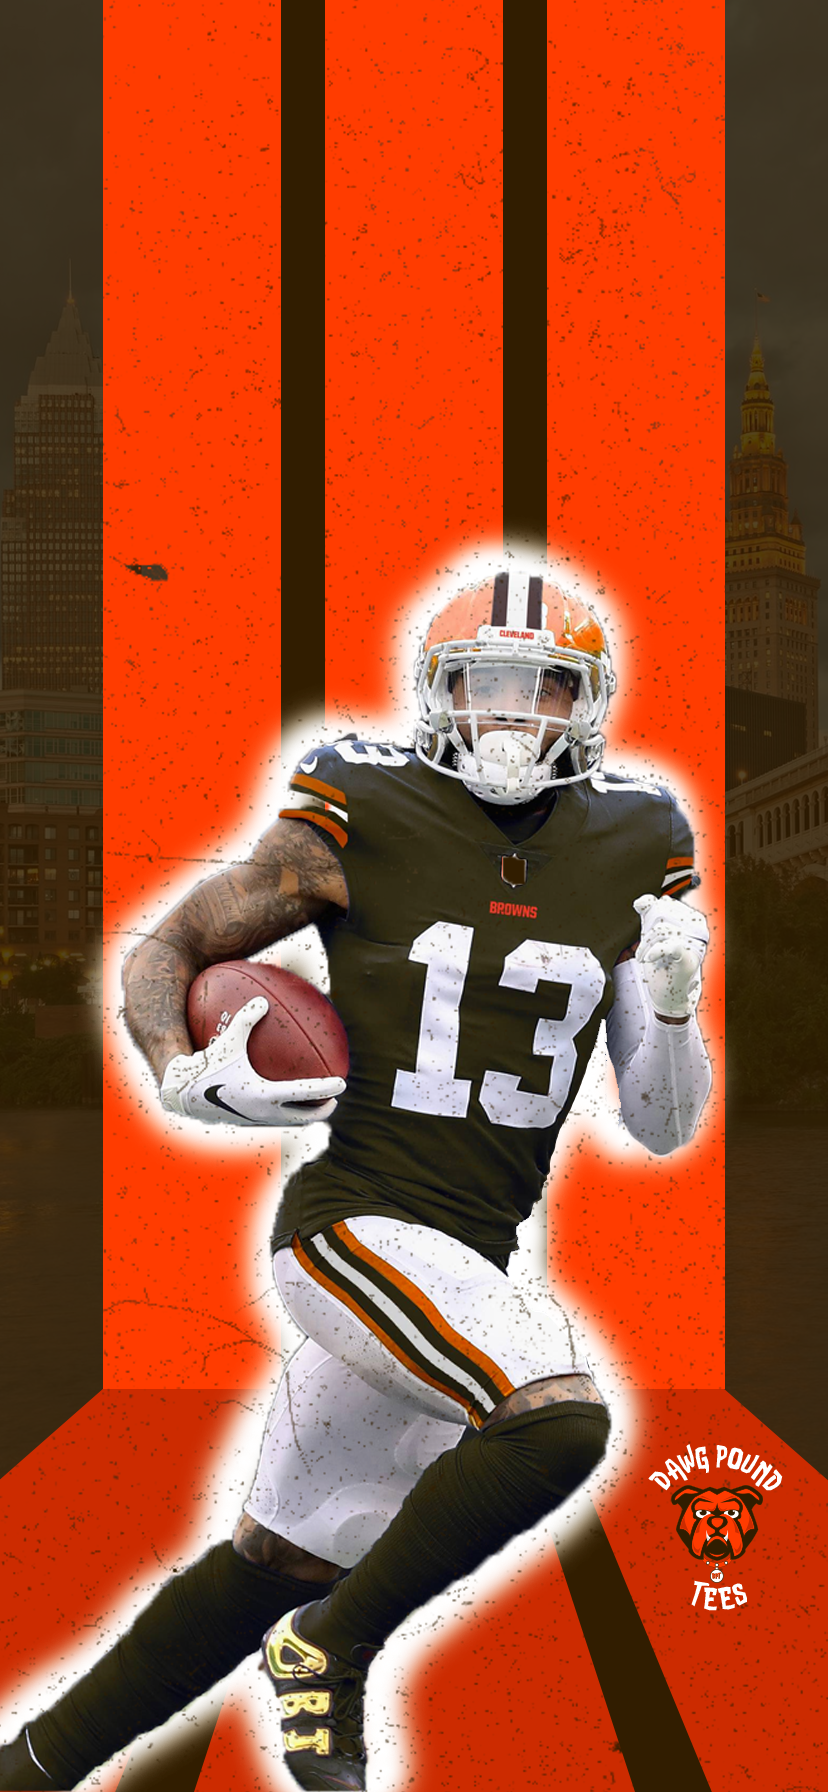 Cleveland Browns Wallpaper For Iphone Obj Wallpaper For